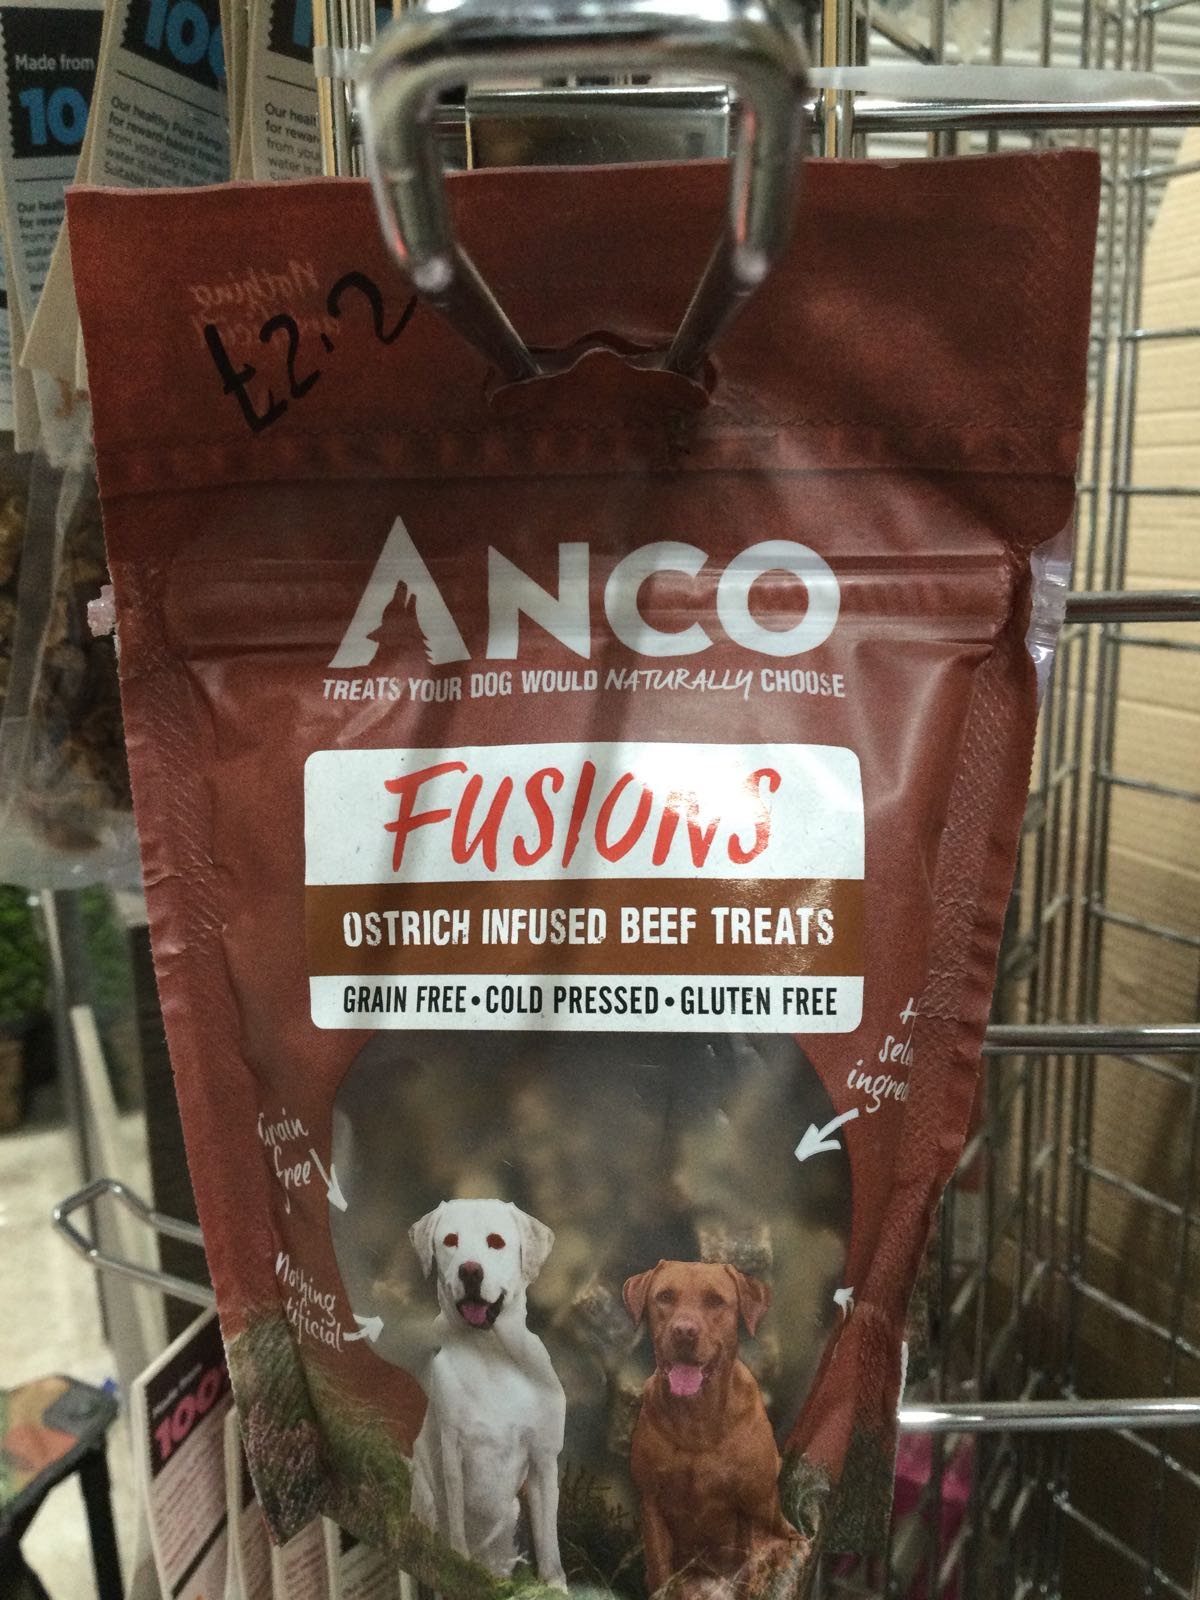 Anco Fusions- Ostrich infused beef treats